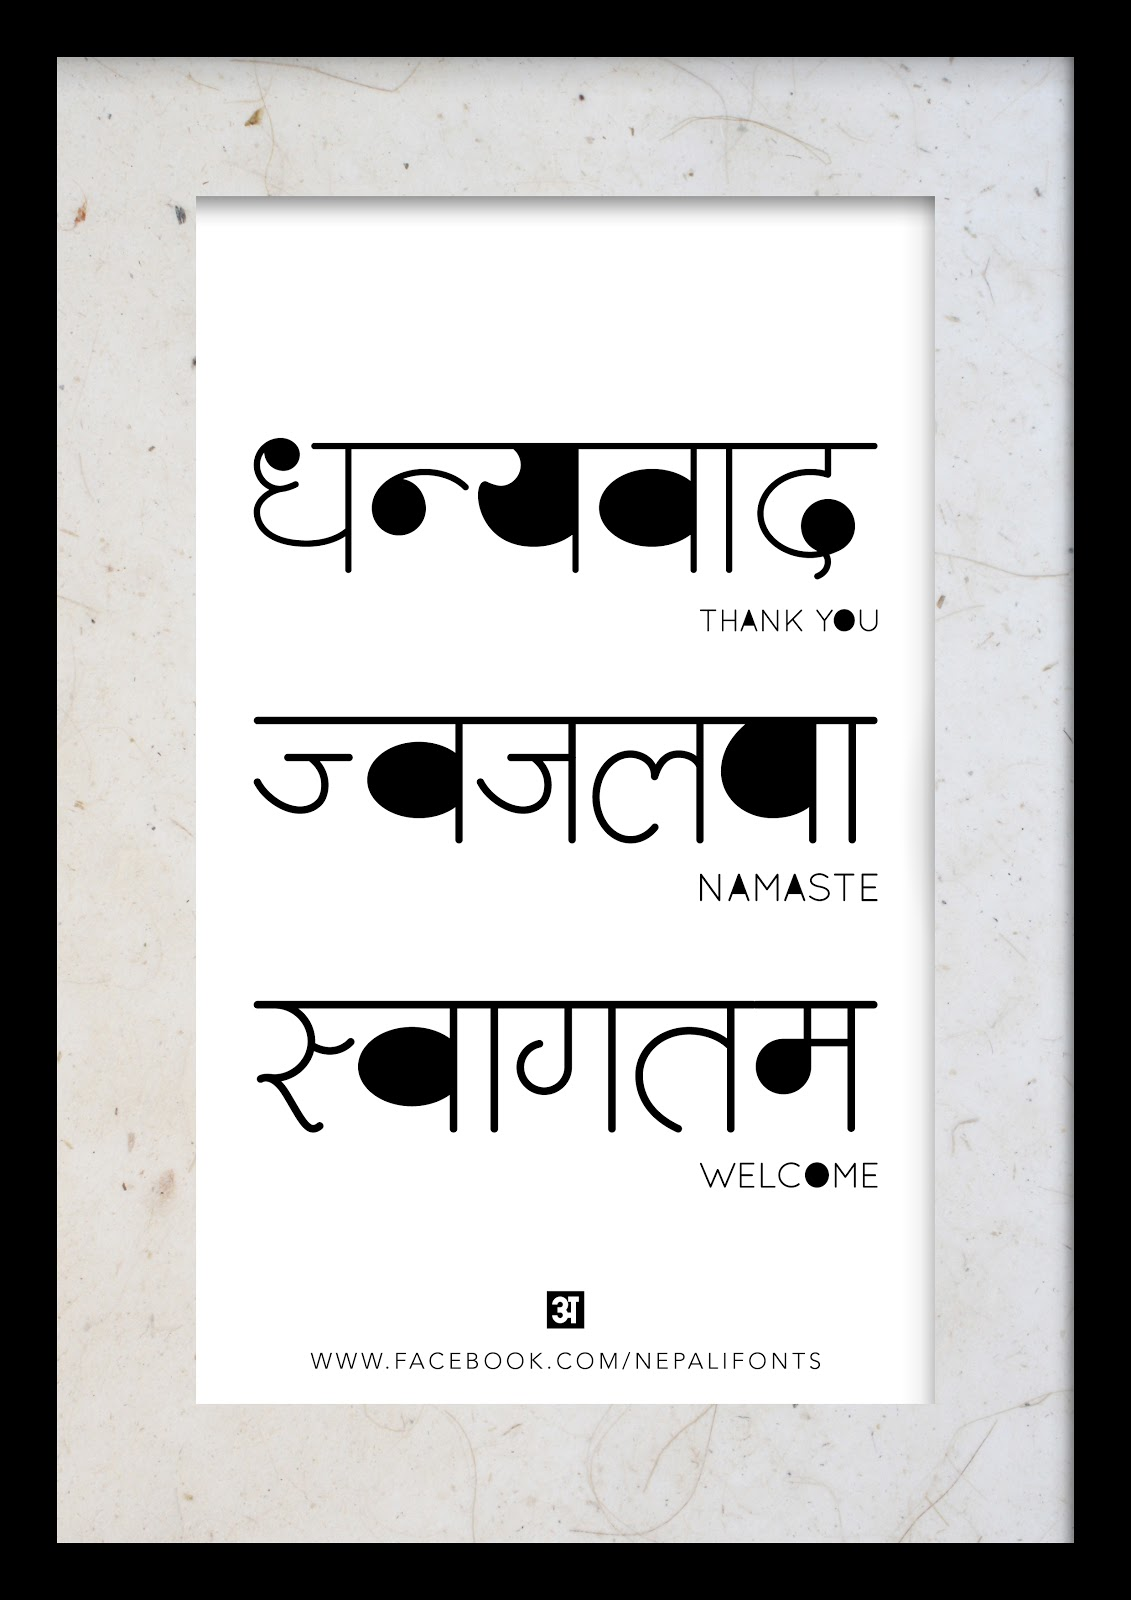 New Nepali Fonts: Nepali words wallpapers -